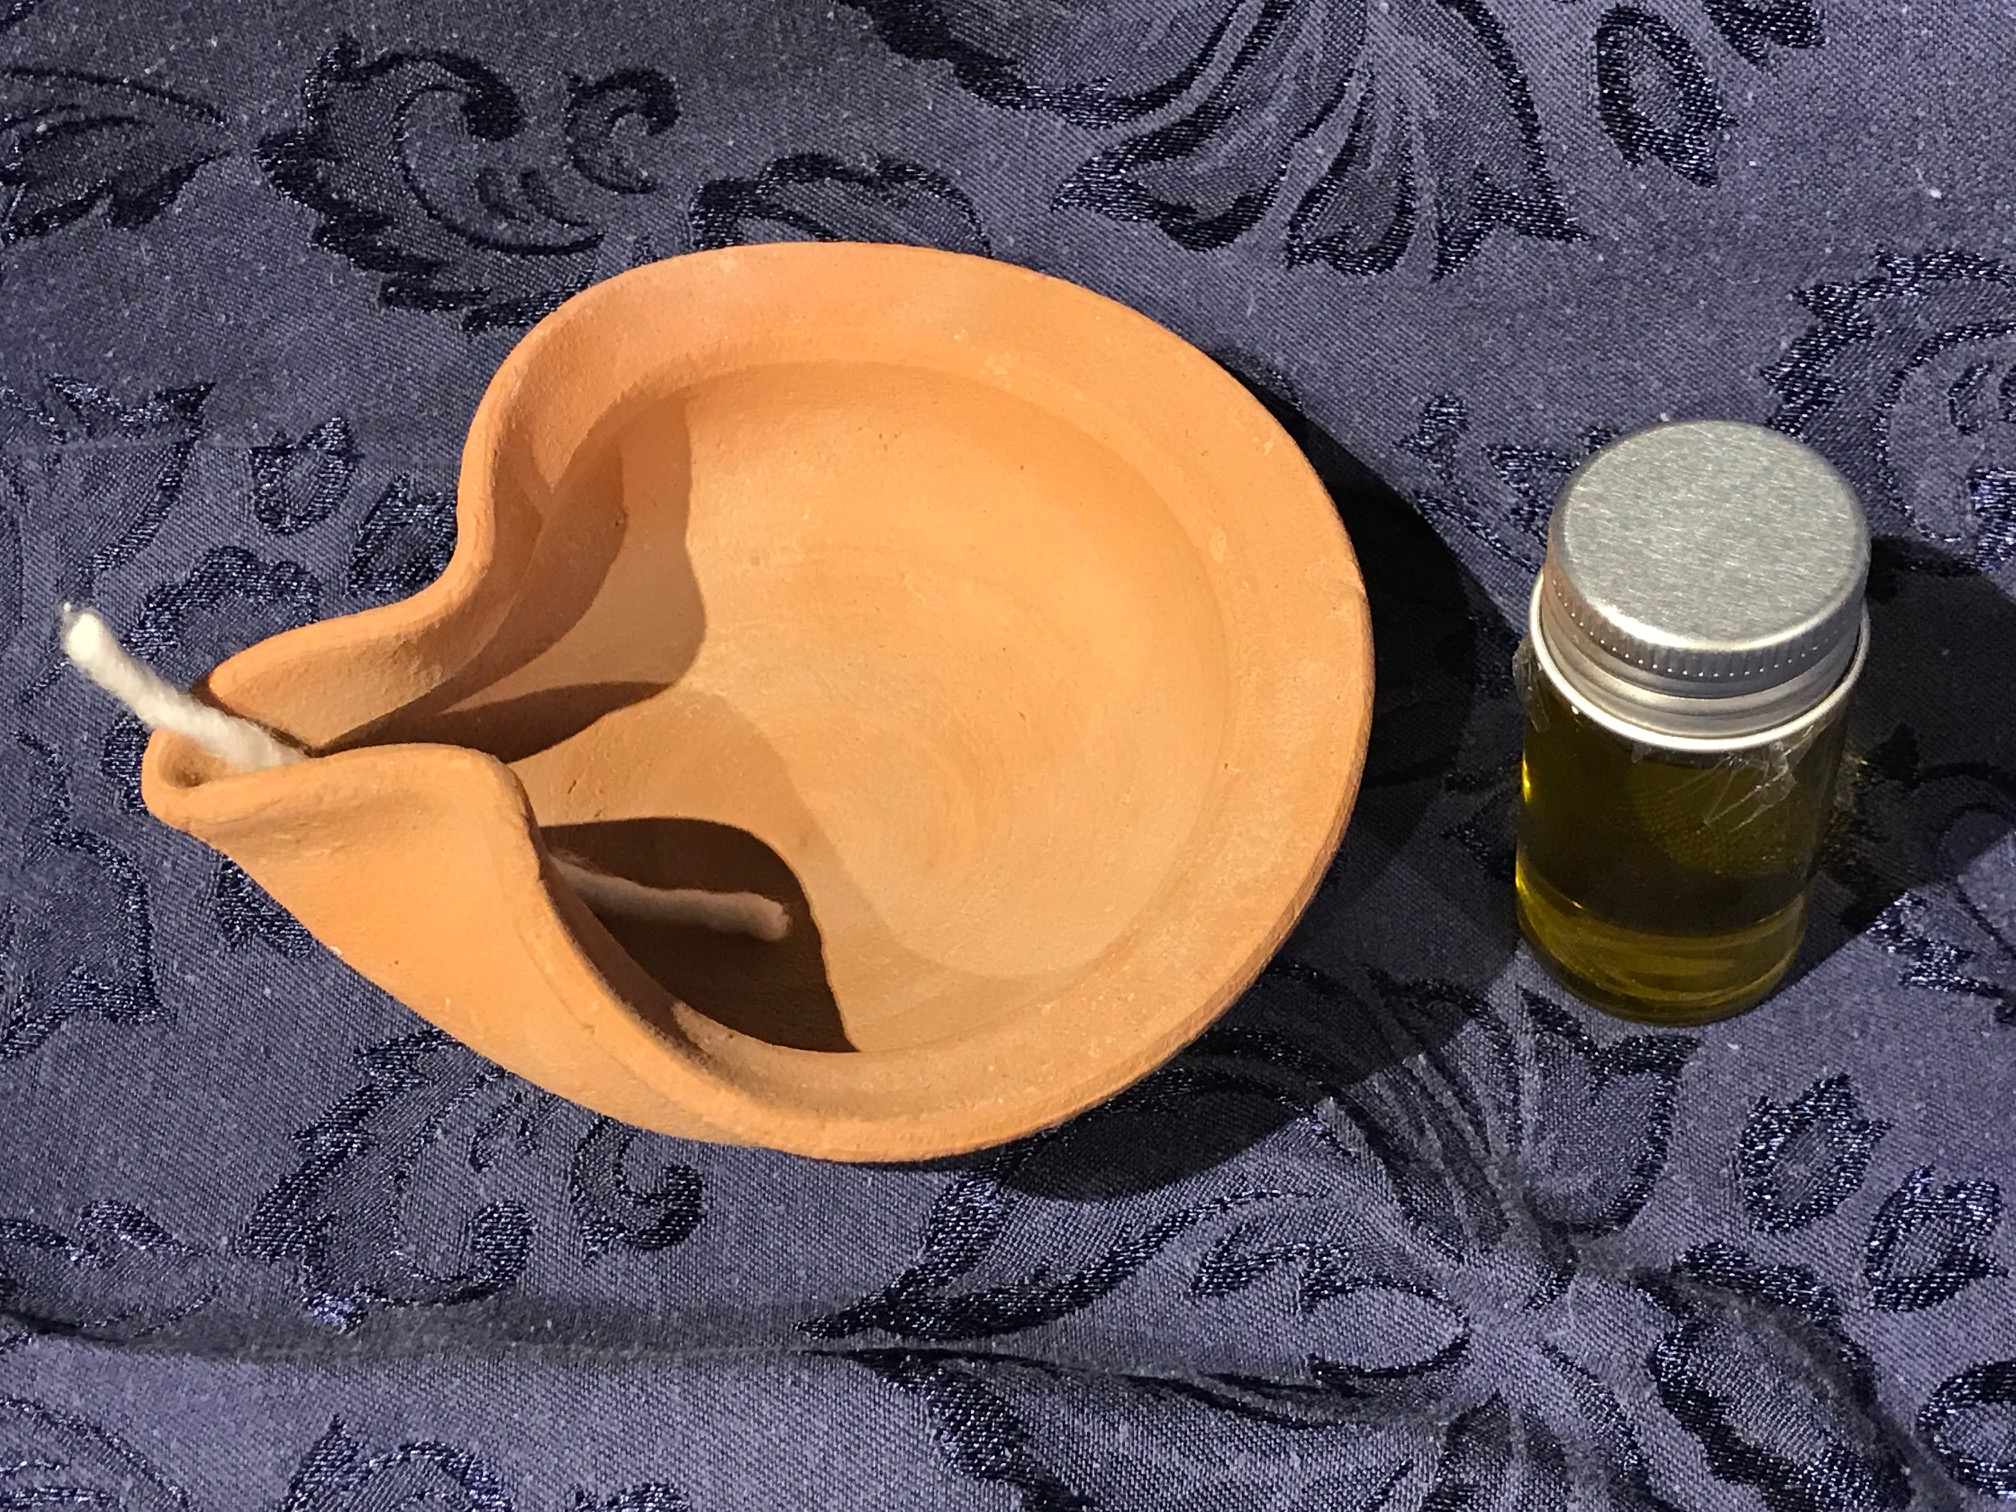 2018 Handmade Bare Unglazed Ceramic Made in Israel Olive Oil Lamp: Lead-Free (One of three lamps tested.)